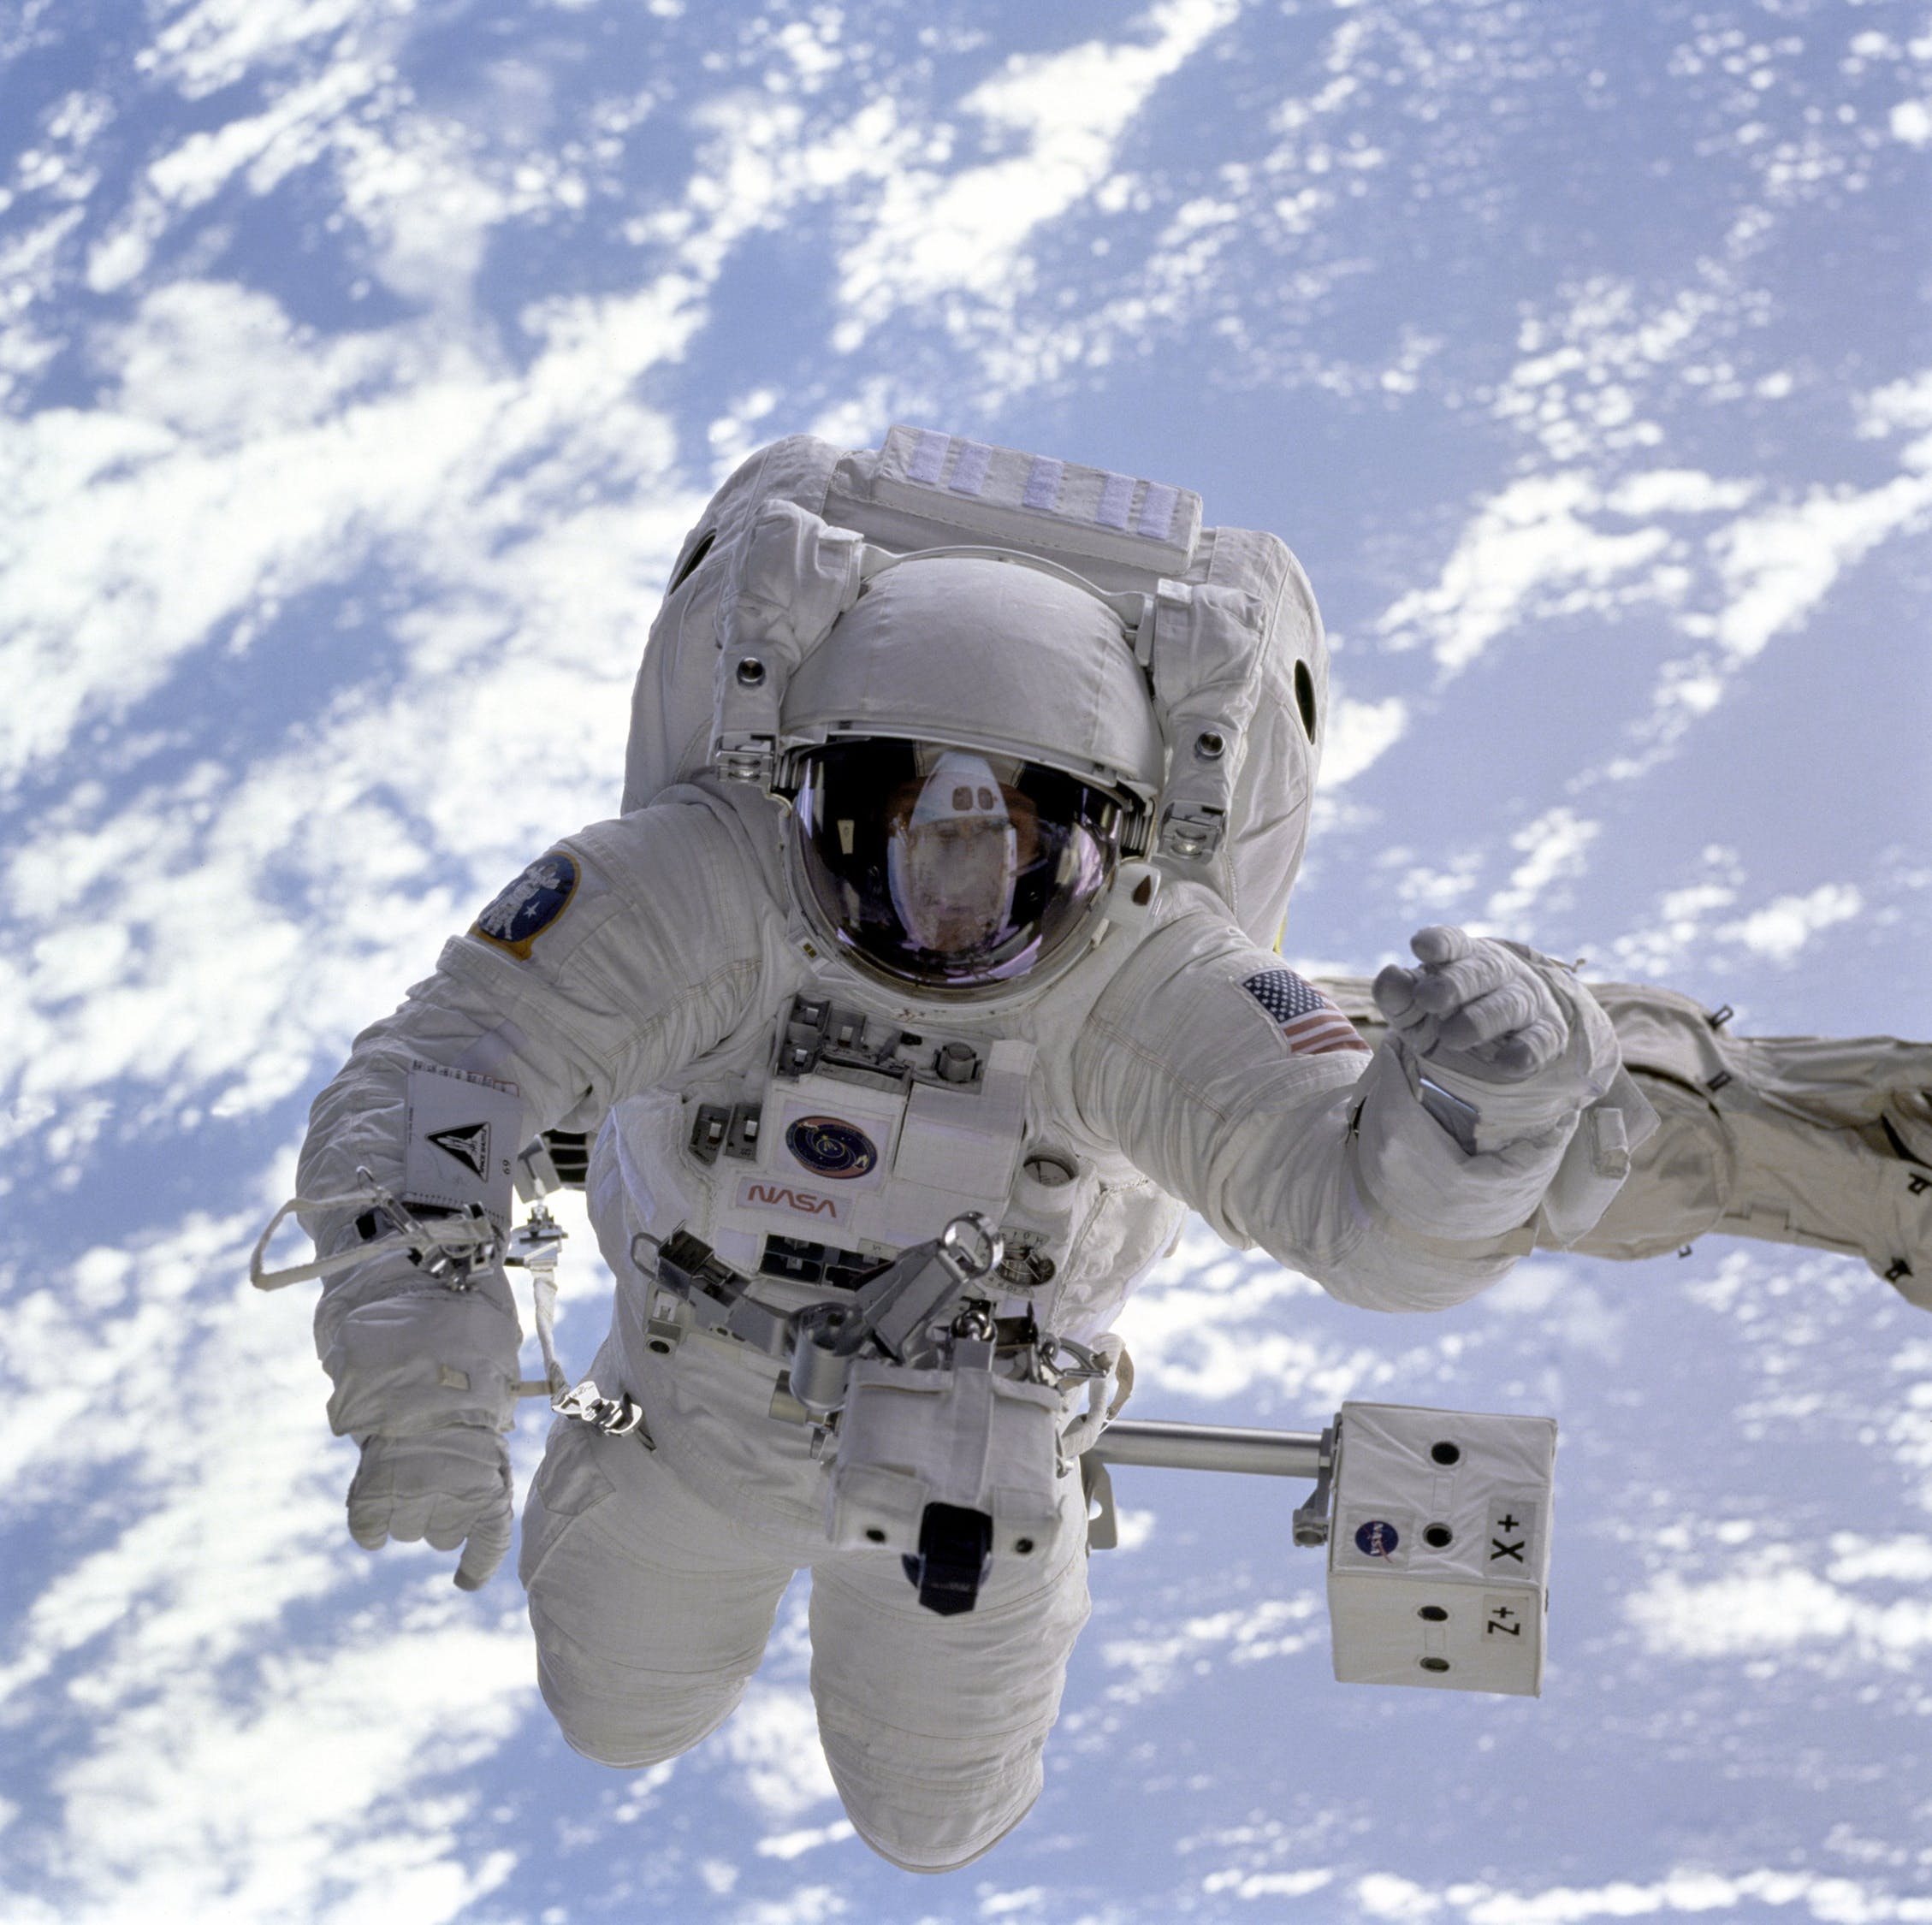 Astronauts are not allowed to eat beans before they go into space because passing wind in a spacesuit damages them.